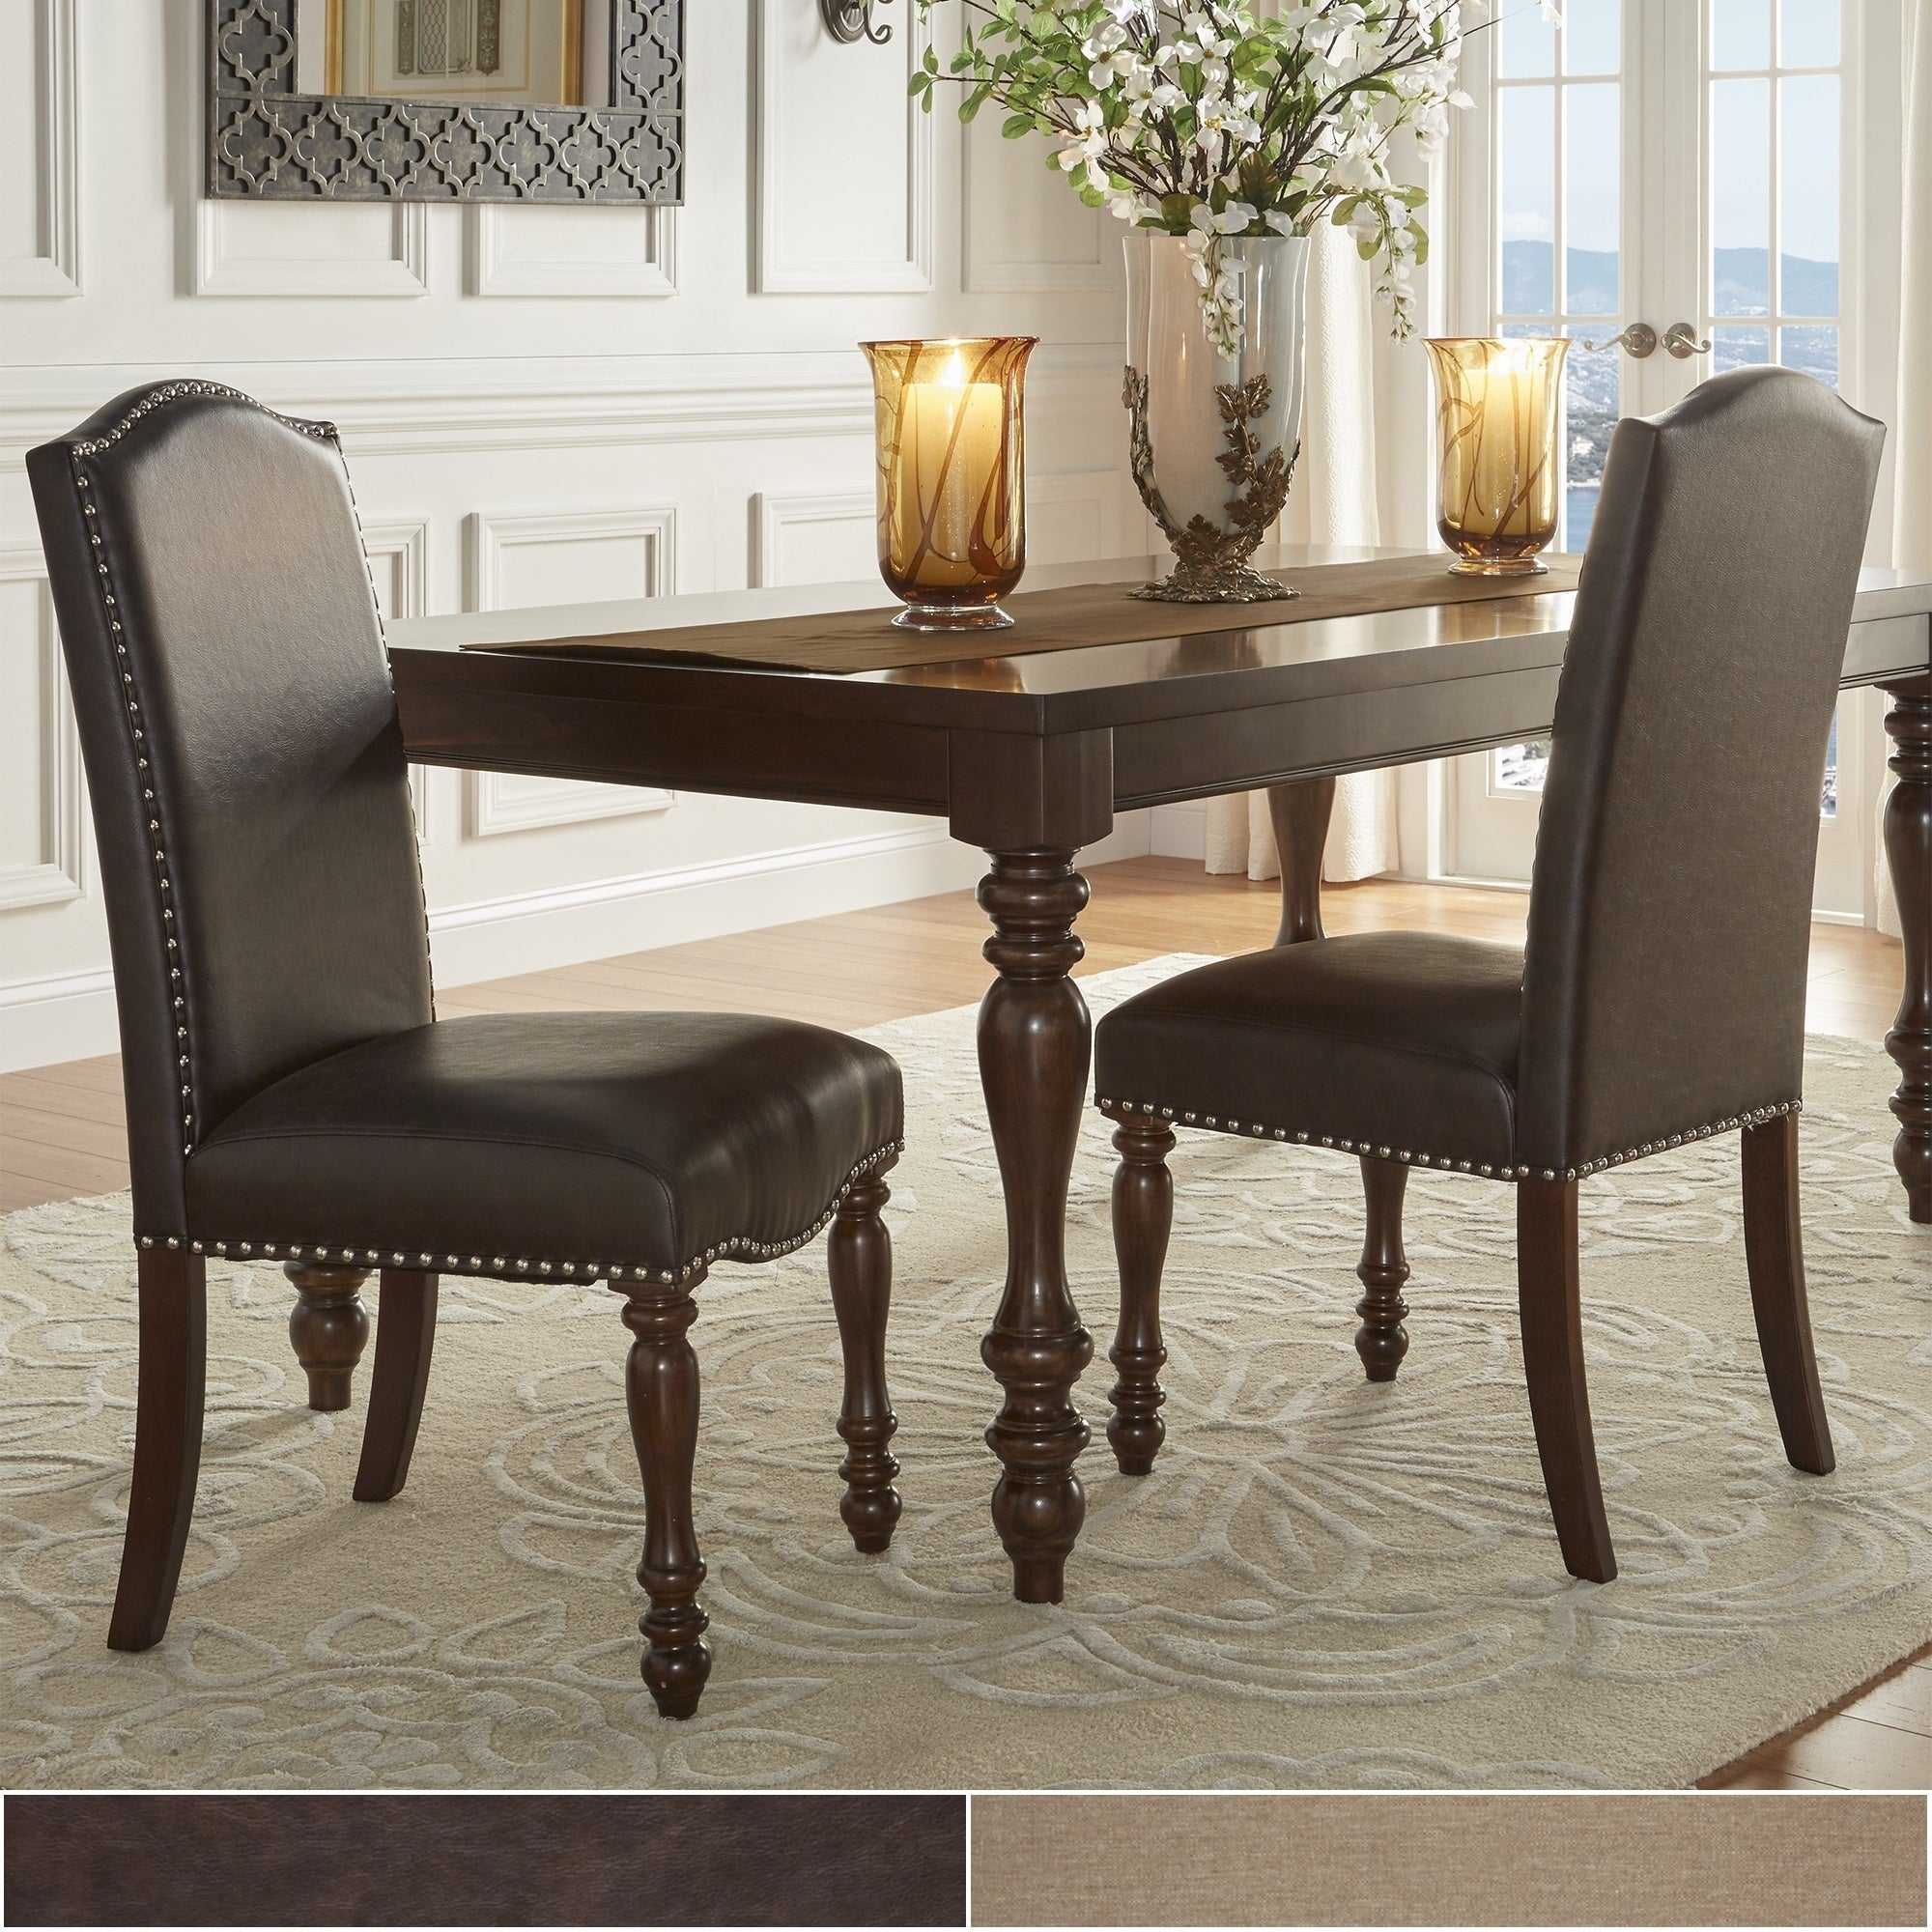 Parisian Nailhead Upholstered Dining Chairs (Set of 2) by iNSPIRE Q Classic  - Free Shipping Today - Overstock.com - 19409518